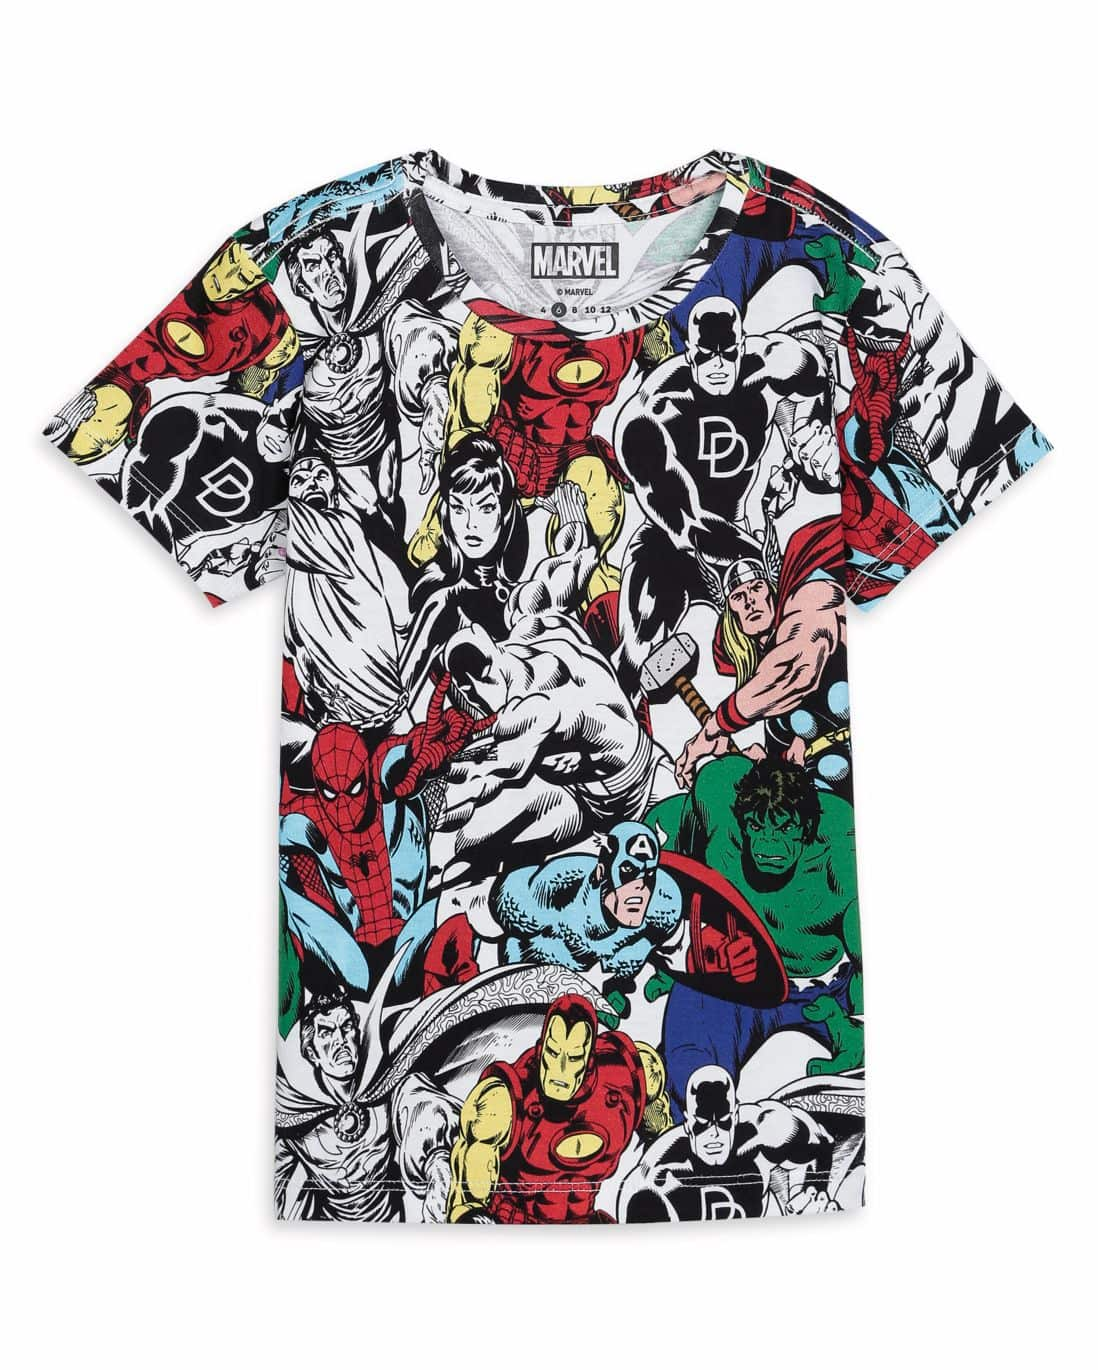 Camiseta Malha Marvel - Multicor